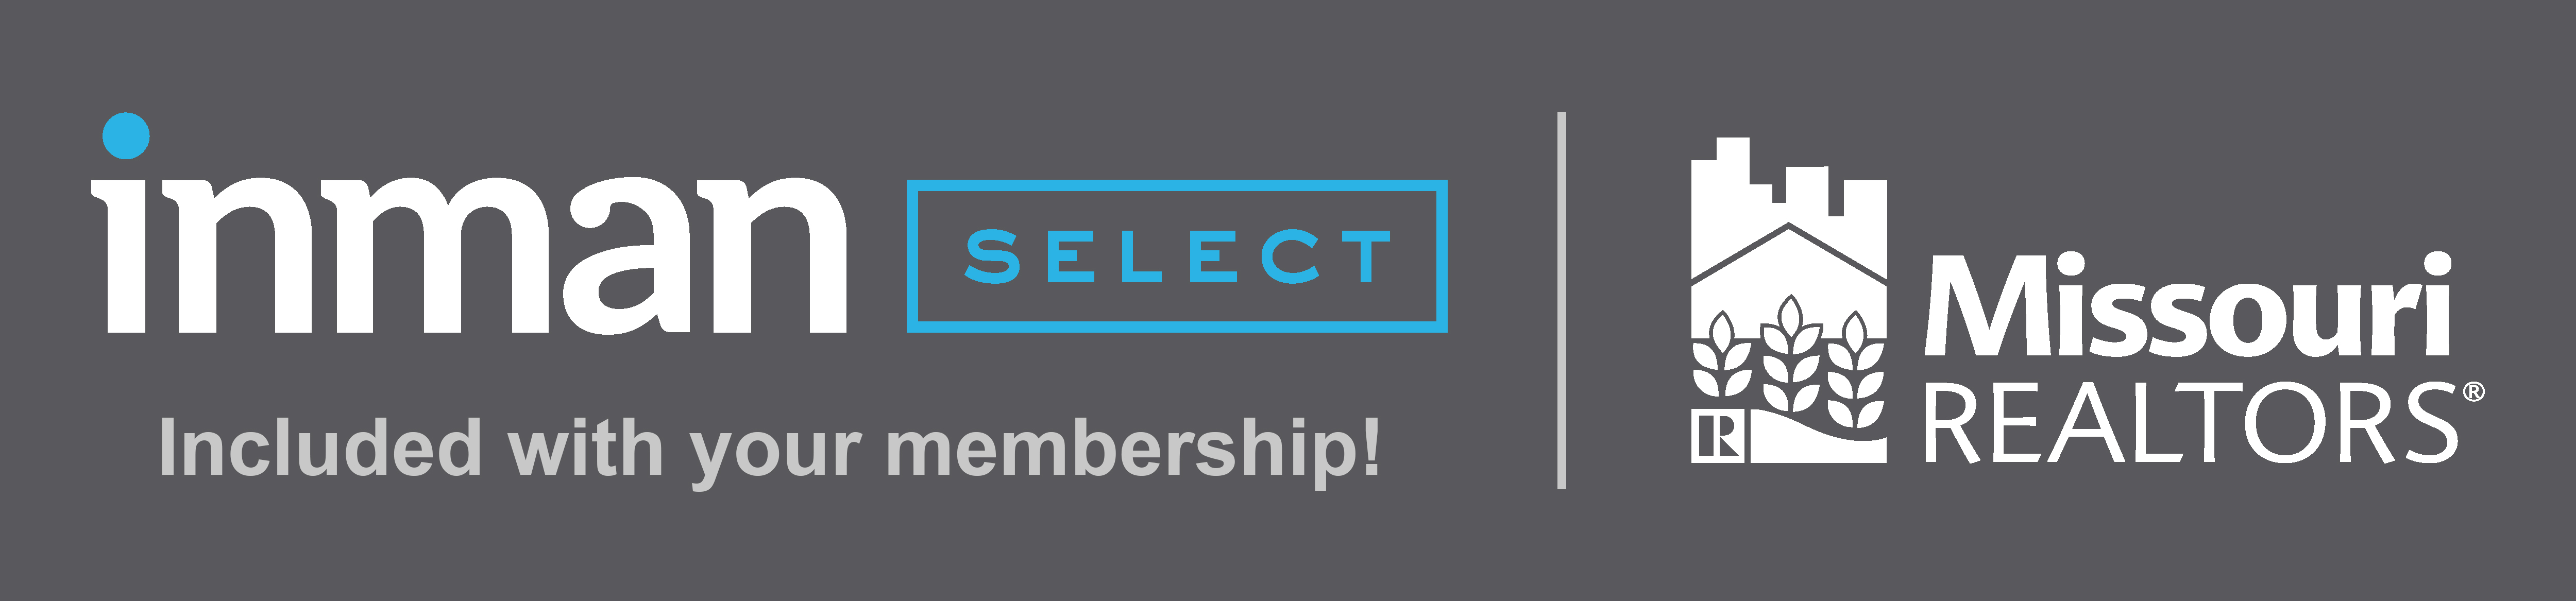 Inman Select and Missouri REALTOR Logo